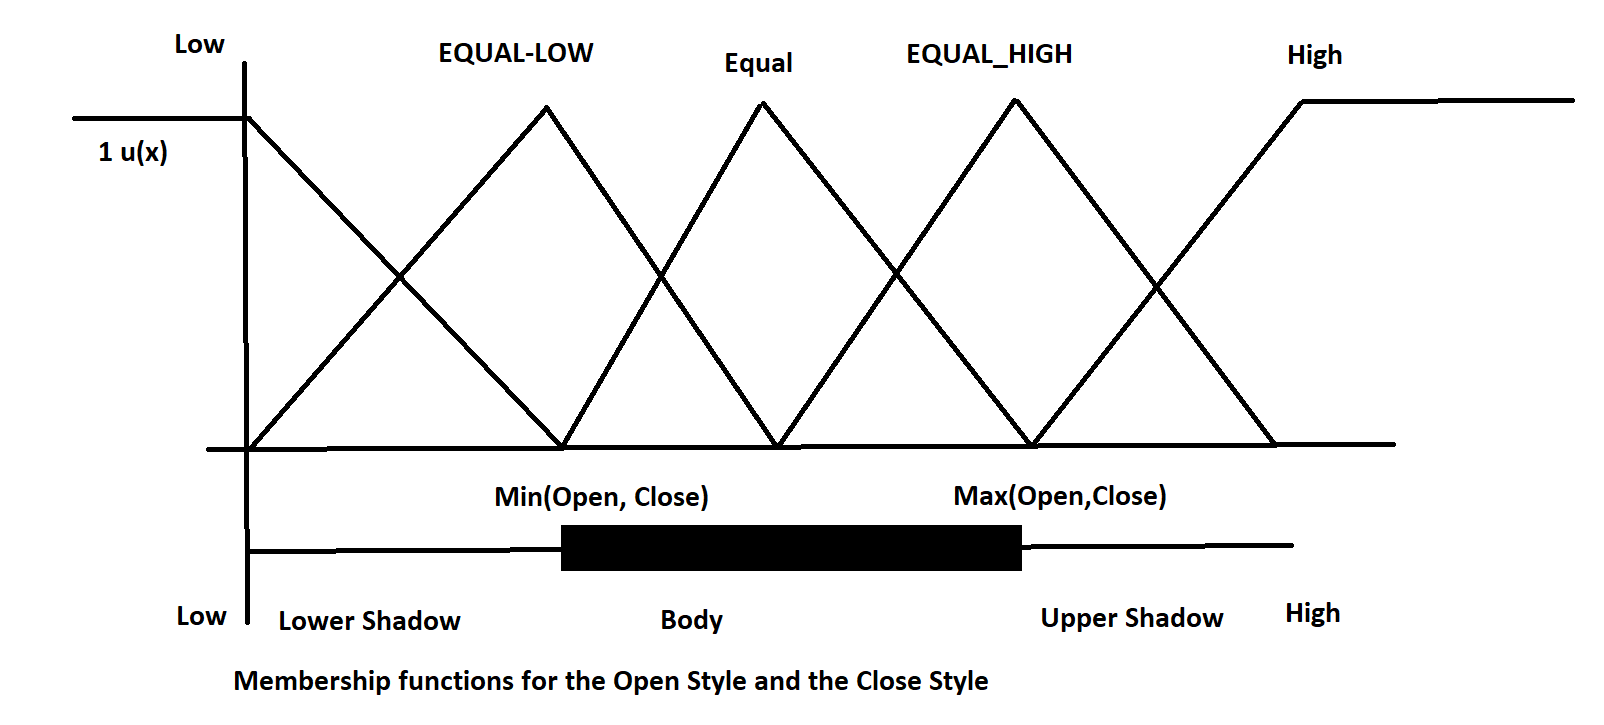 Fuzzy Membership for Open style and Close Style